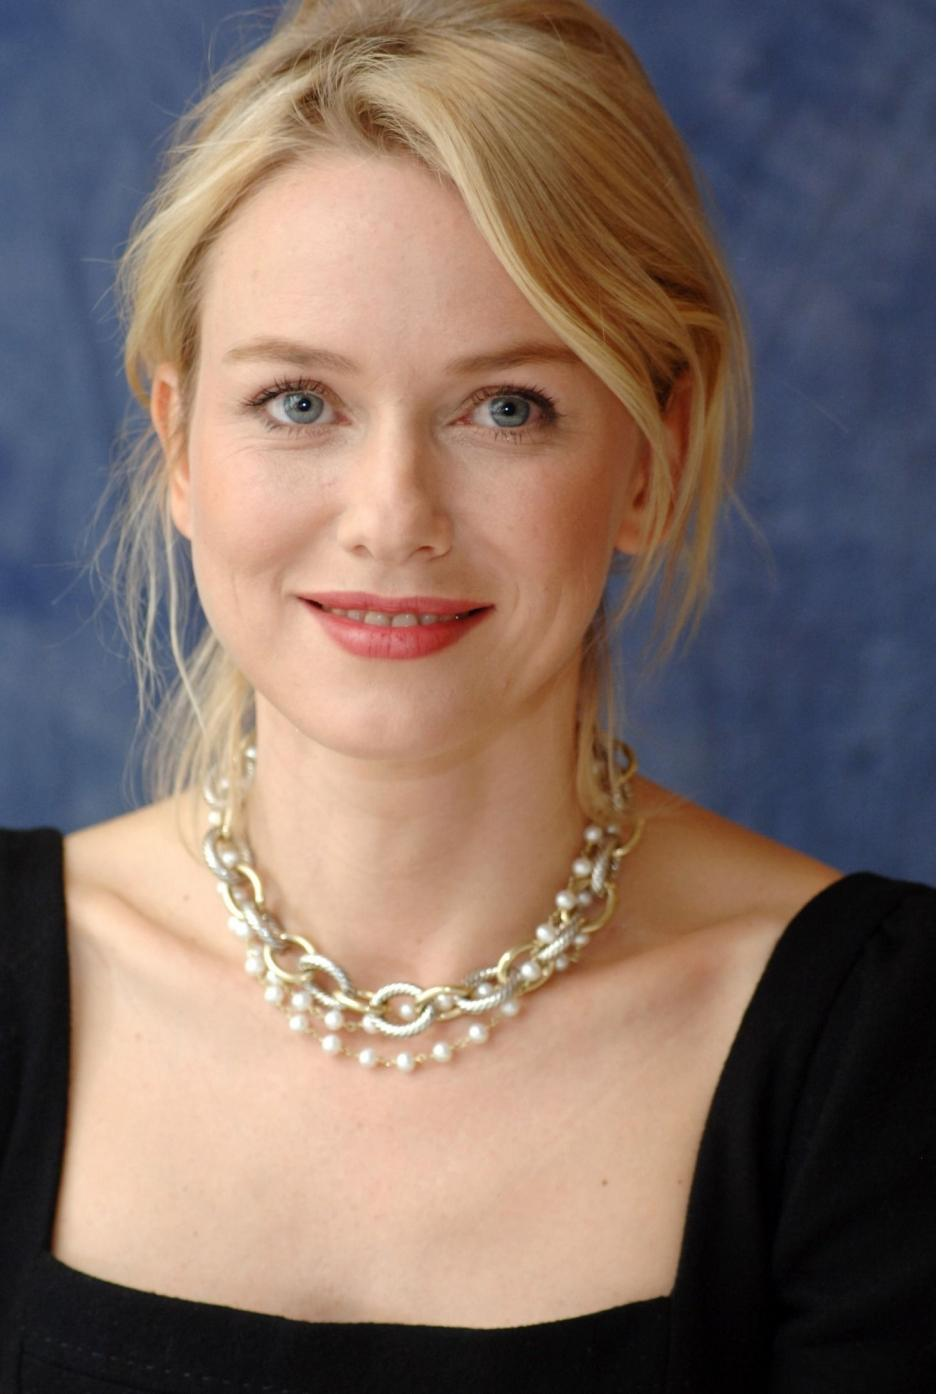 naomi watts hd wallpapers free download | theroyalspeaker